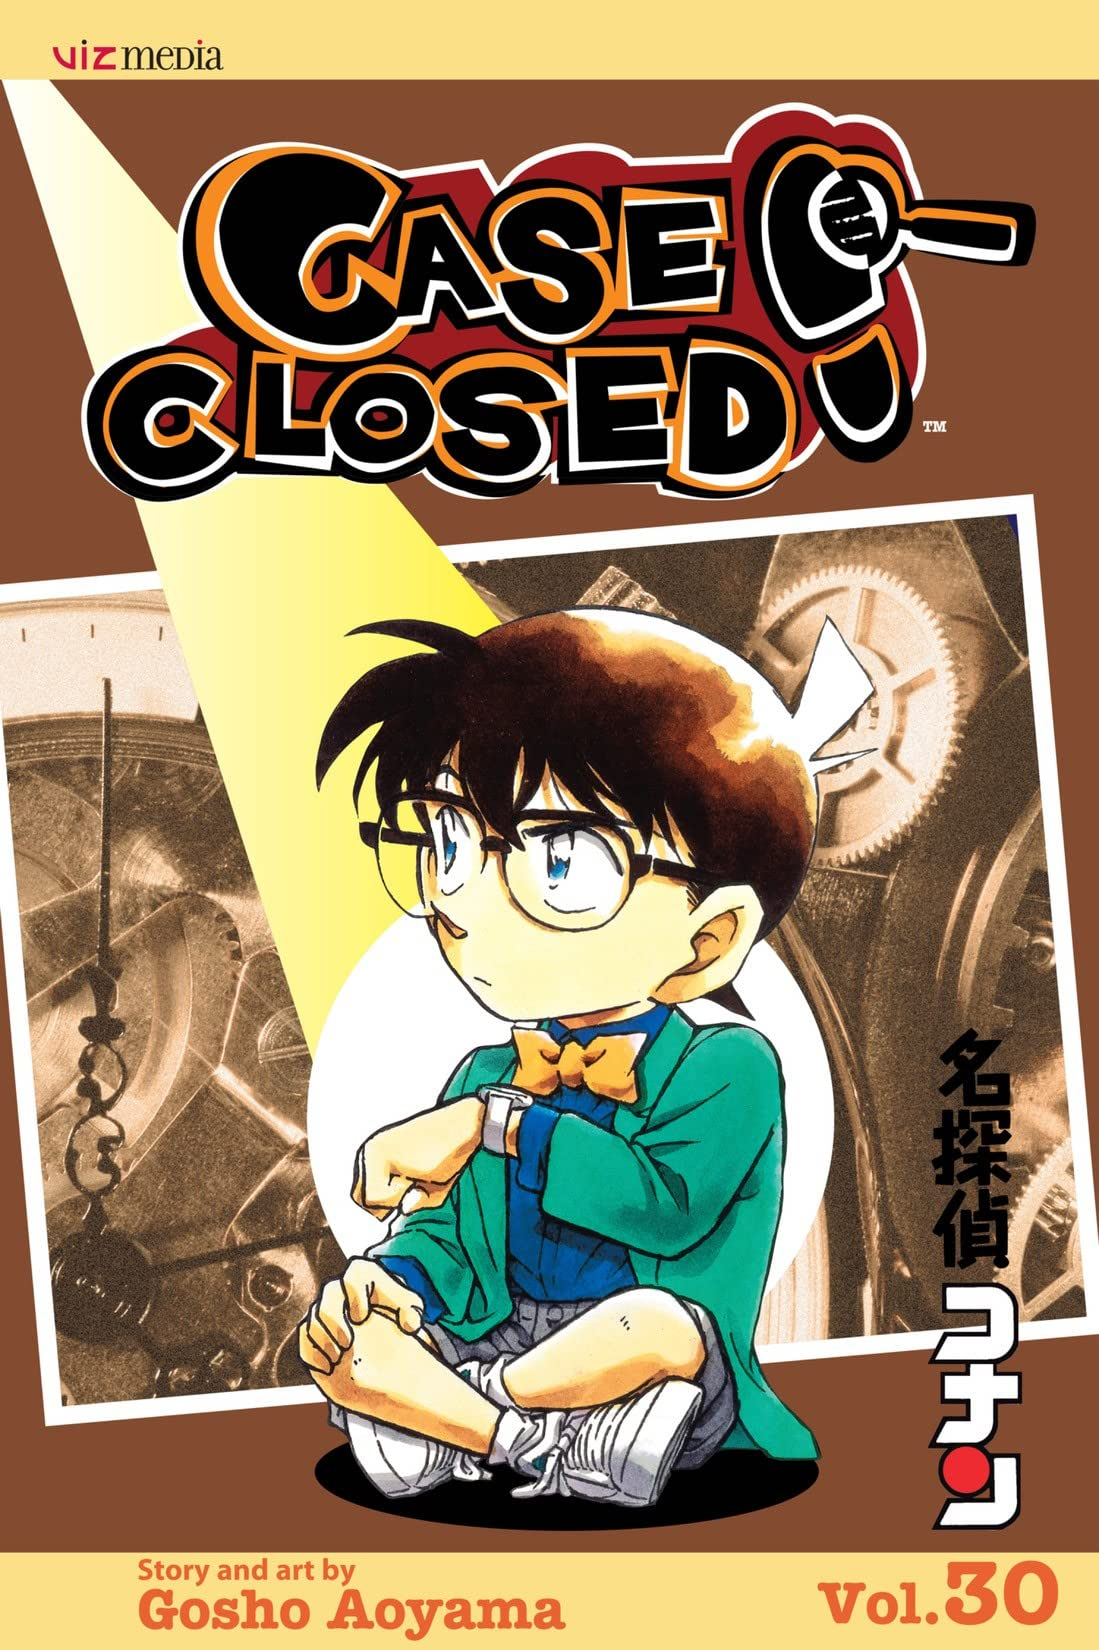 Case Closed Vol. 30